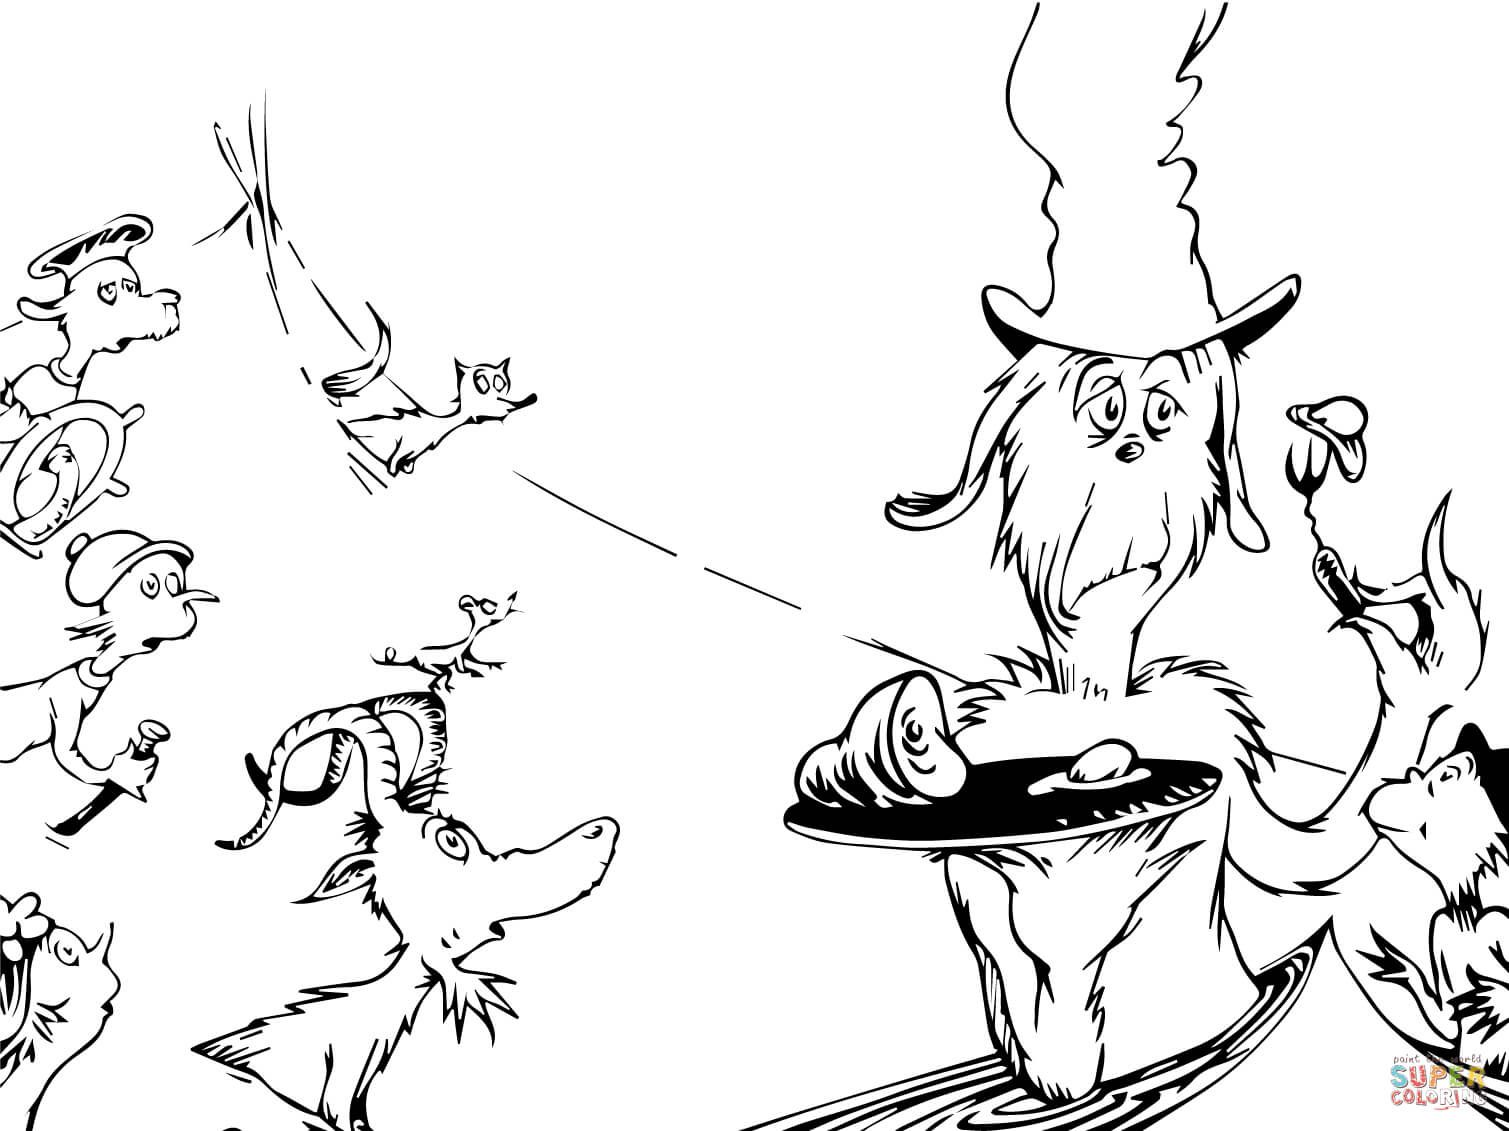 Green Eggs And Ham Dr Seuss Coloring Pages Green Eggs And Ham Dr Seuss Coloring Sheet